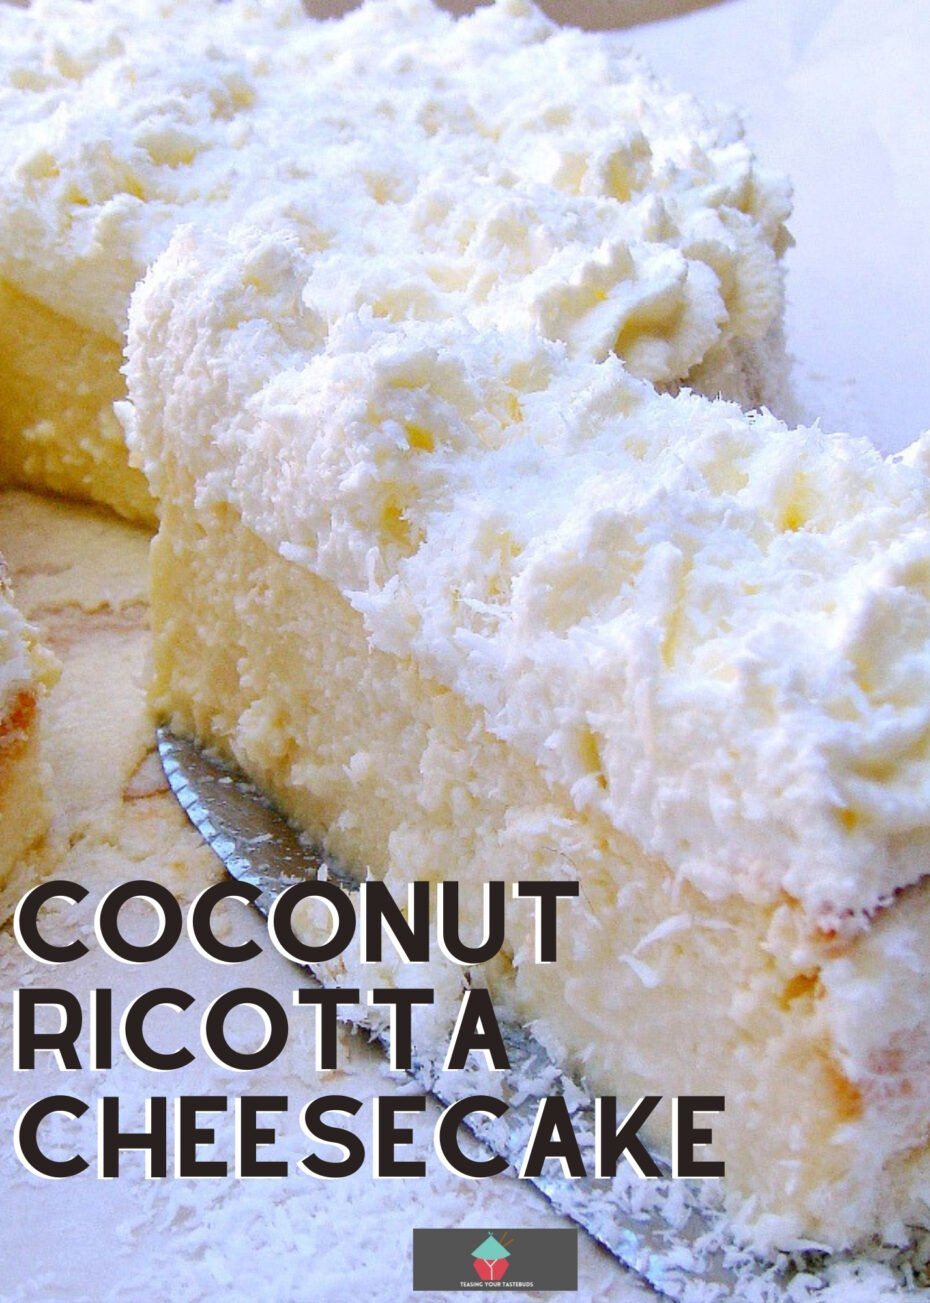 Coconut Ricotta Cheesecake. A wonderful fluffy, soft & creamy baked coconut cheesecake, out of this world! Tips on how to avoid cheesecake cracking included in the recipe